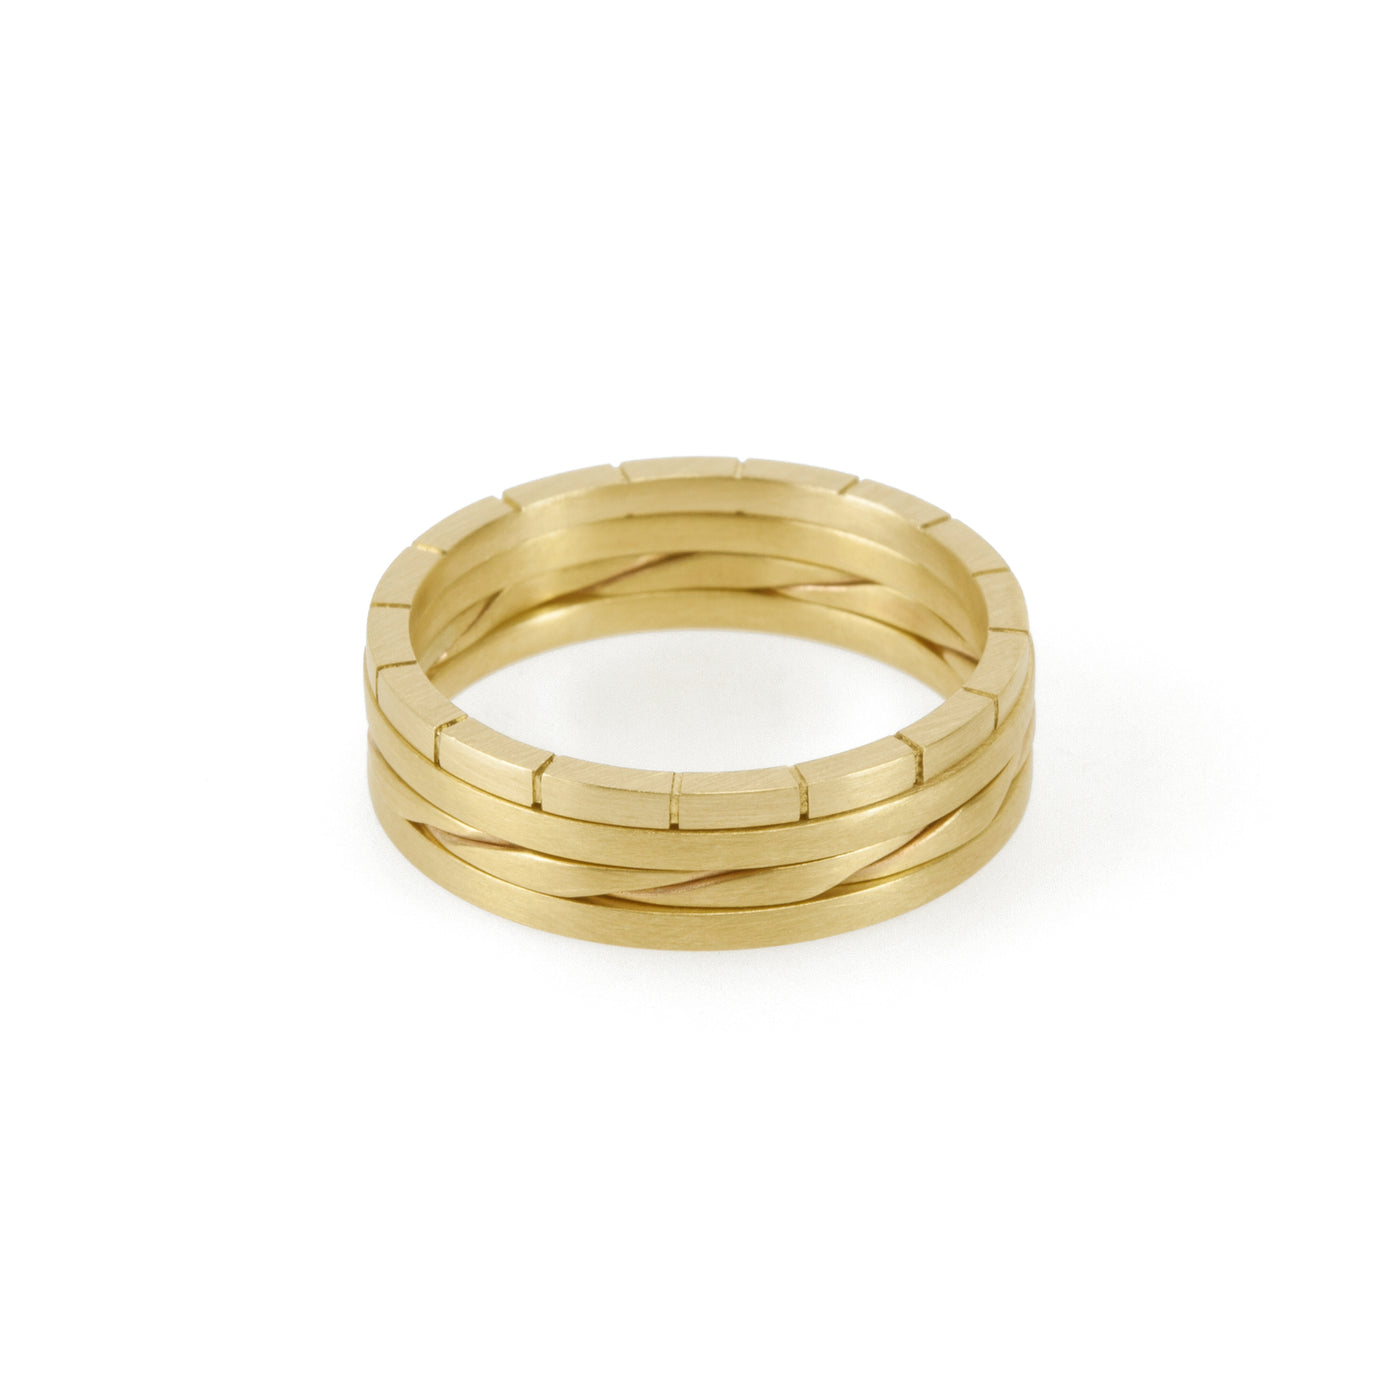 Sustainable gold stacking rings. This ethical Traveller's Set is handmade in Cape Town in recycled gold from e-waste.